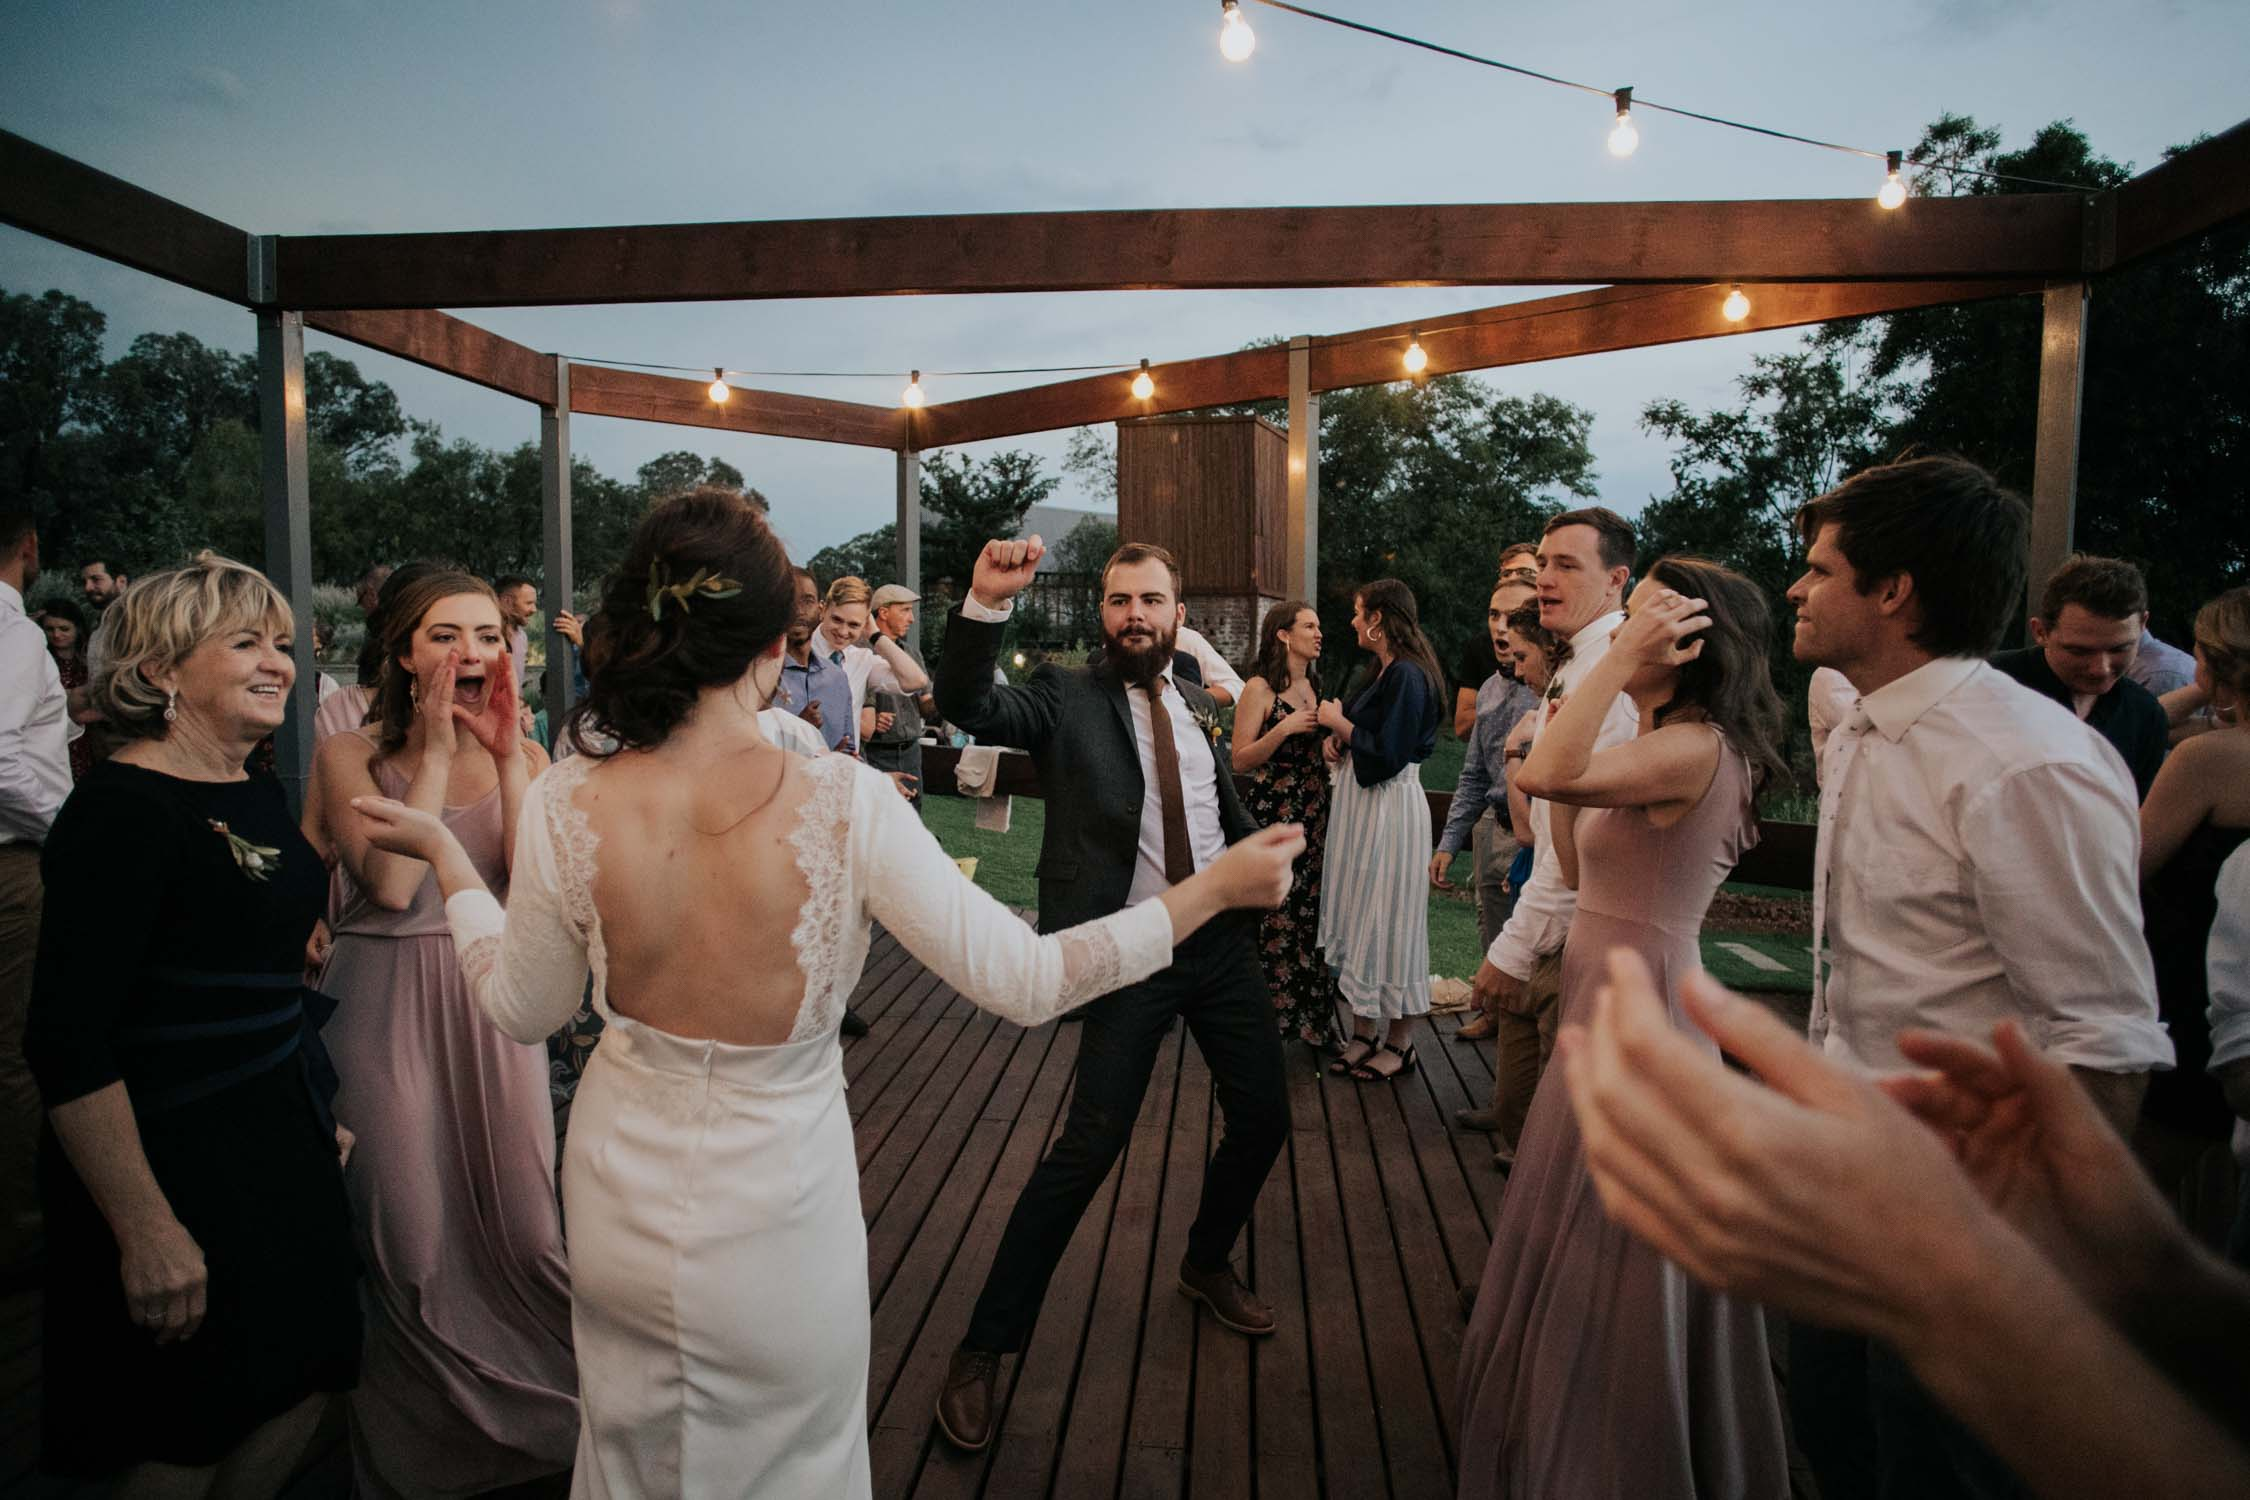 Crazy and cool dance floor moves and moments at wedding